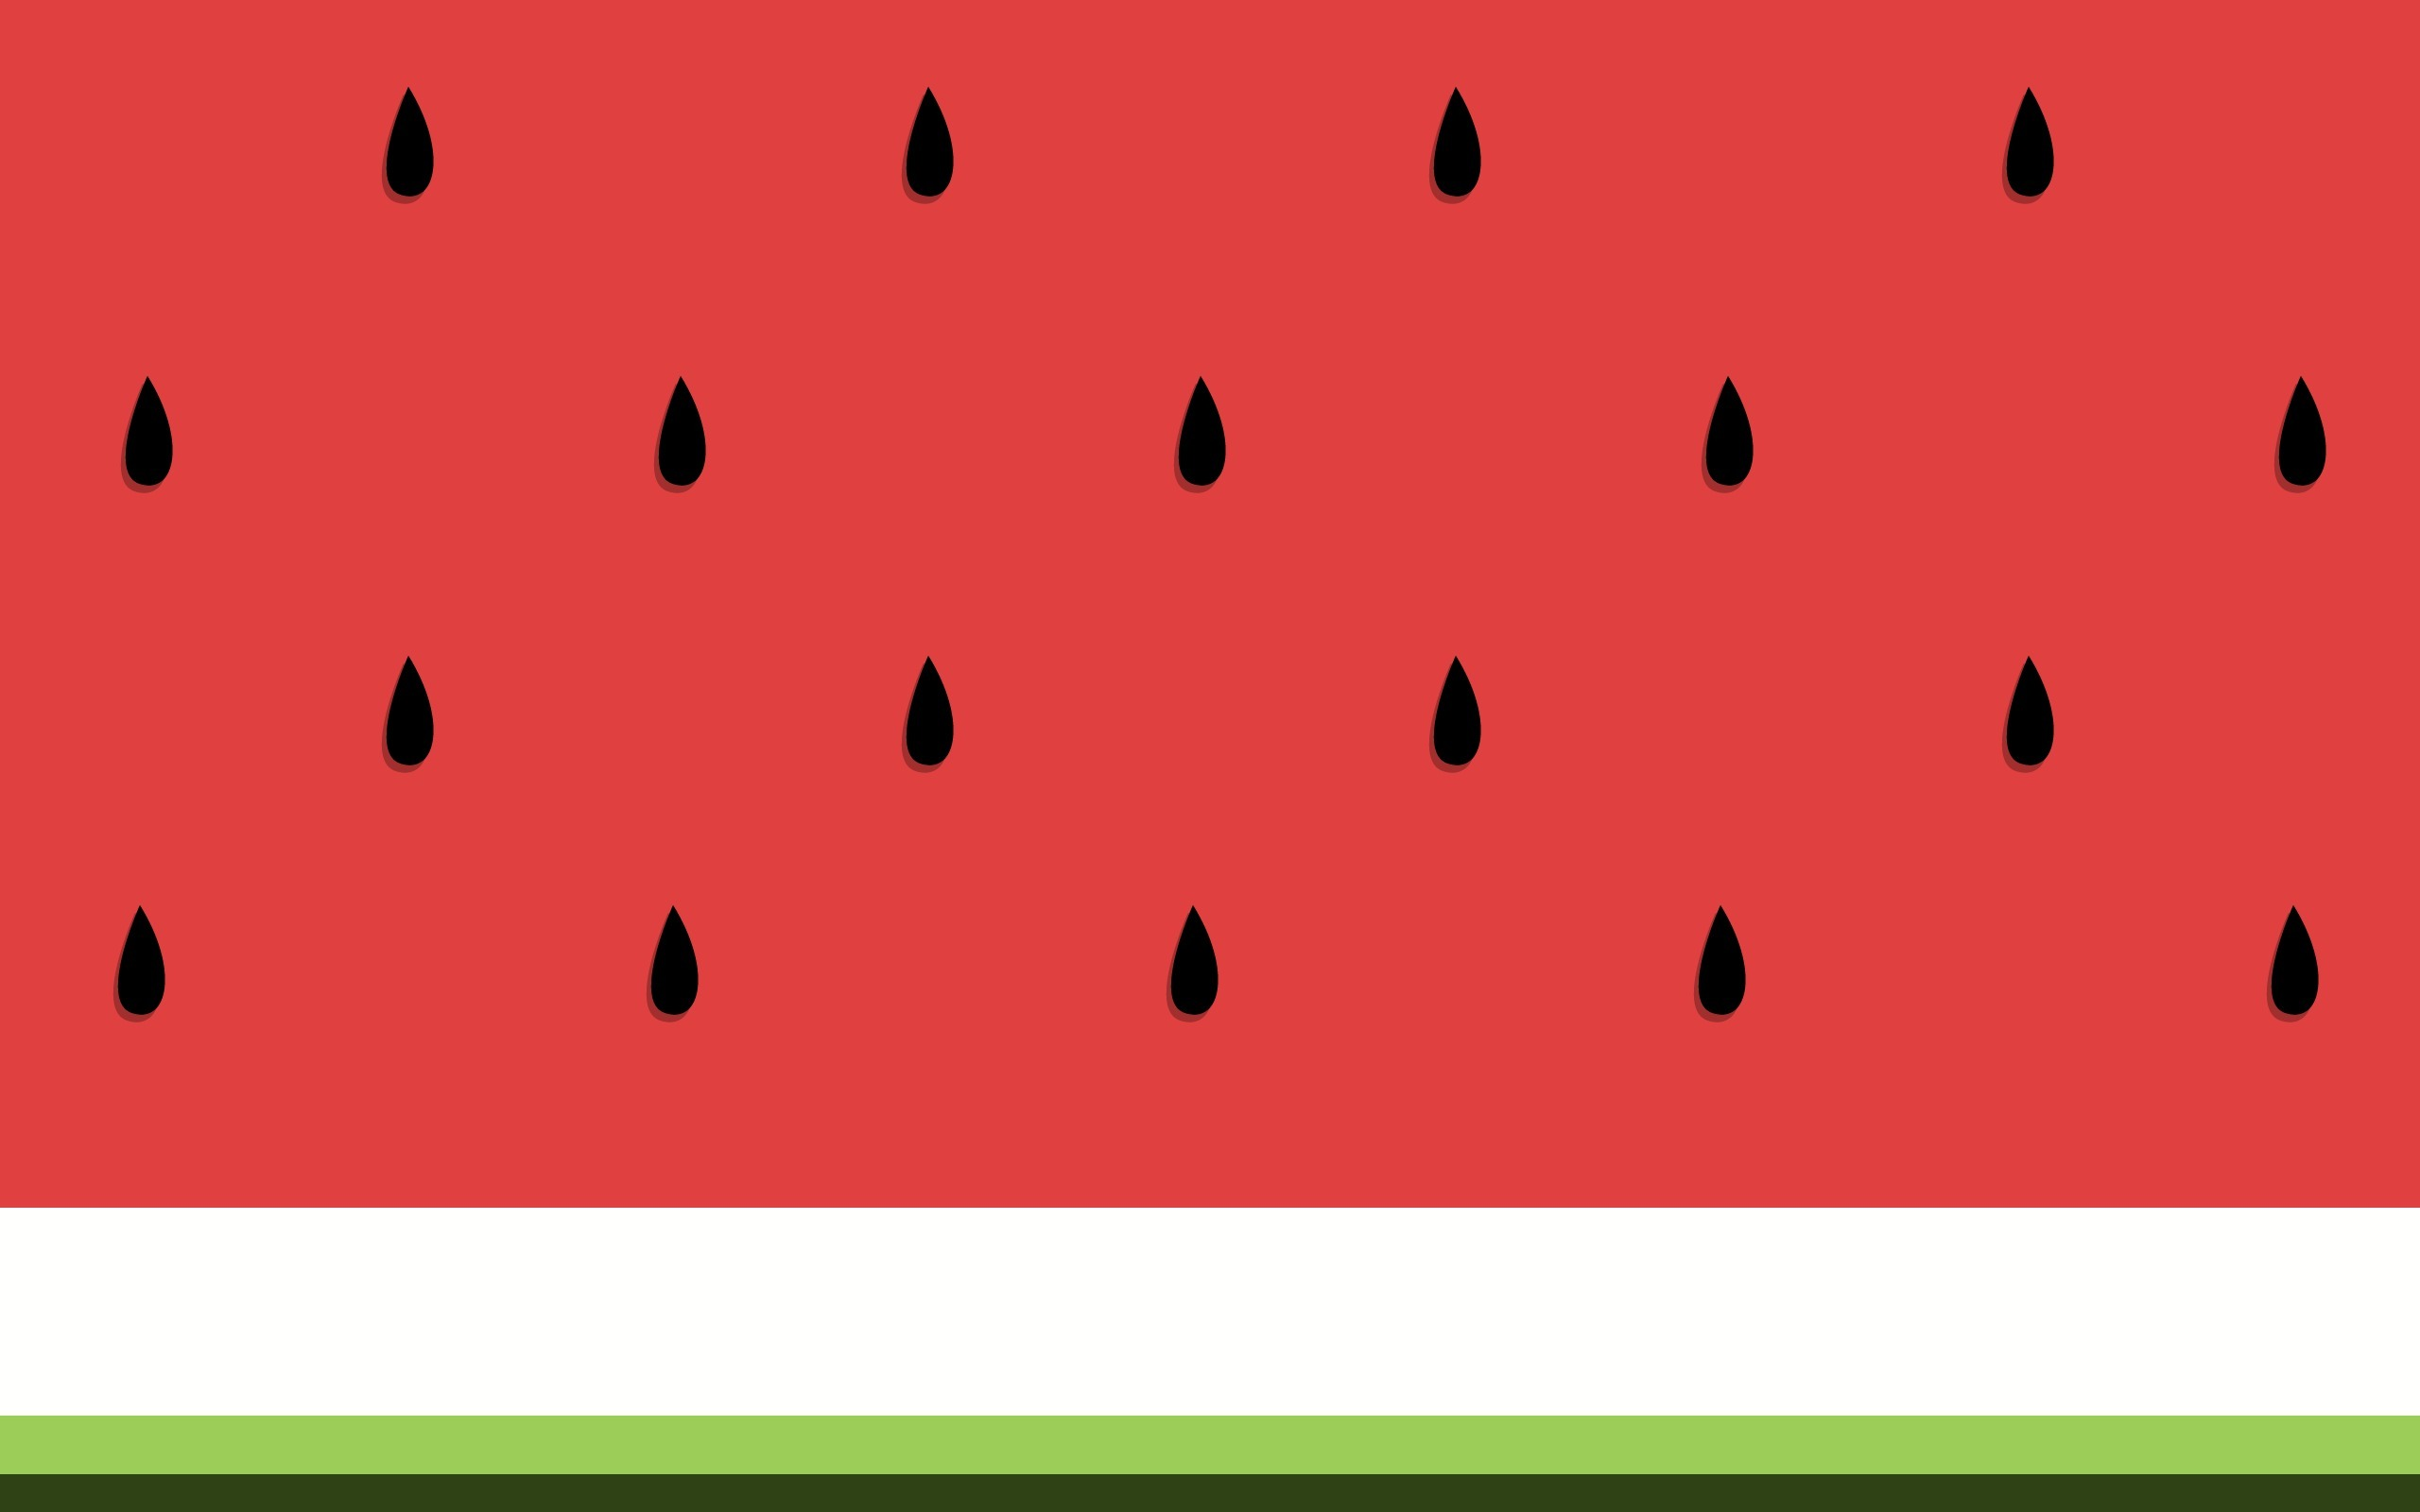 watermelons, download photo, texture, background for website, watermelon texture background